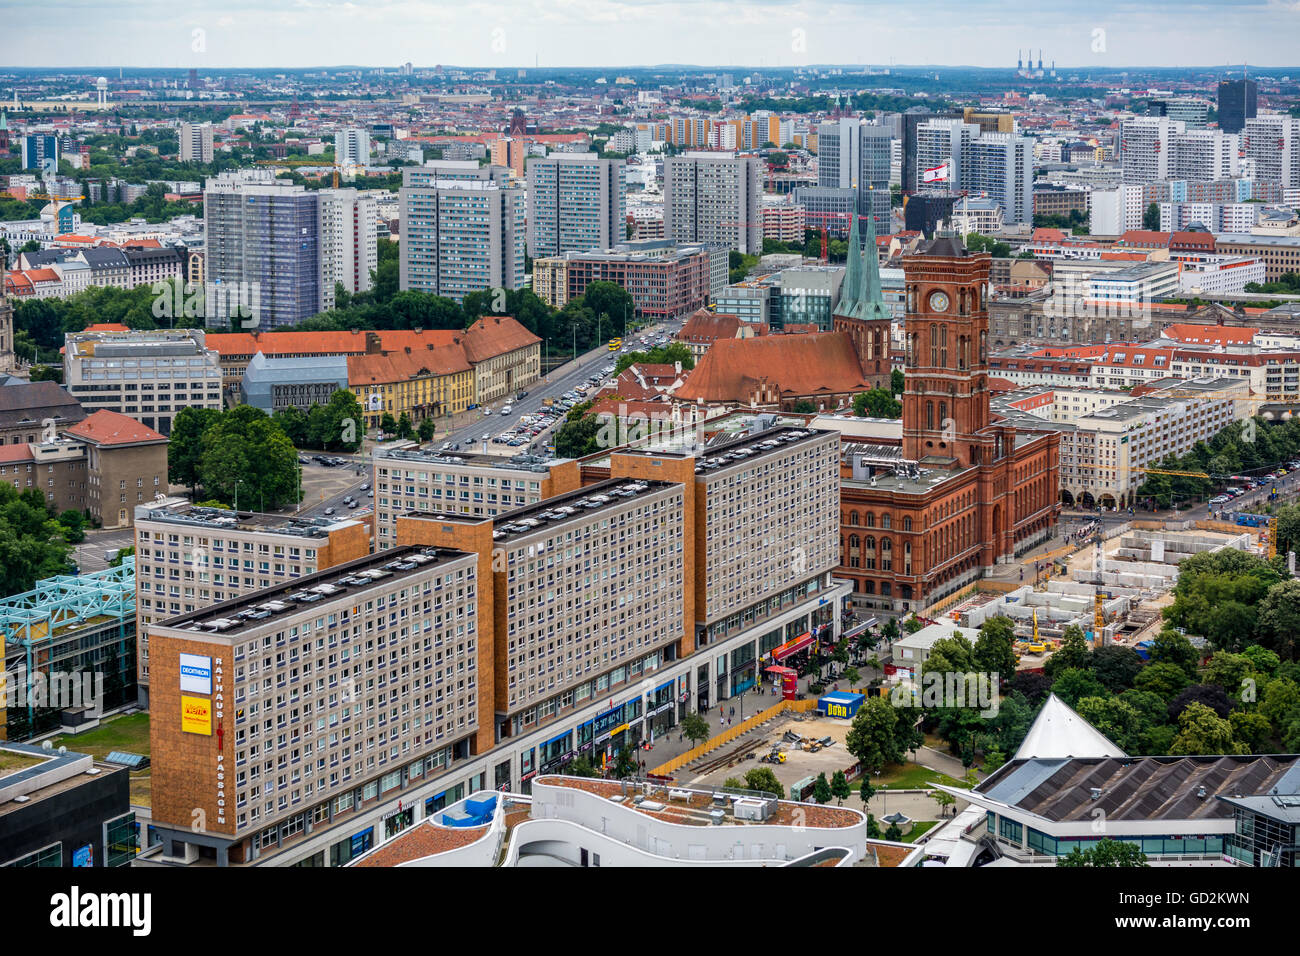 Rotes Rathaus Berlin from Park Inn panorama - Stock Image